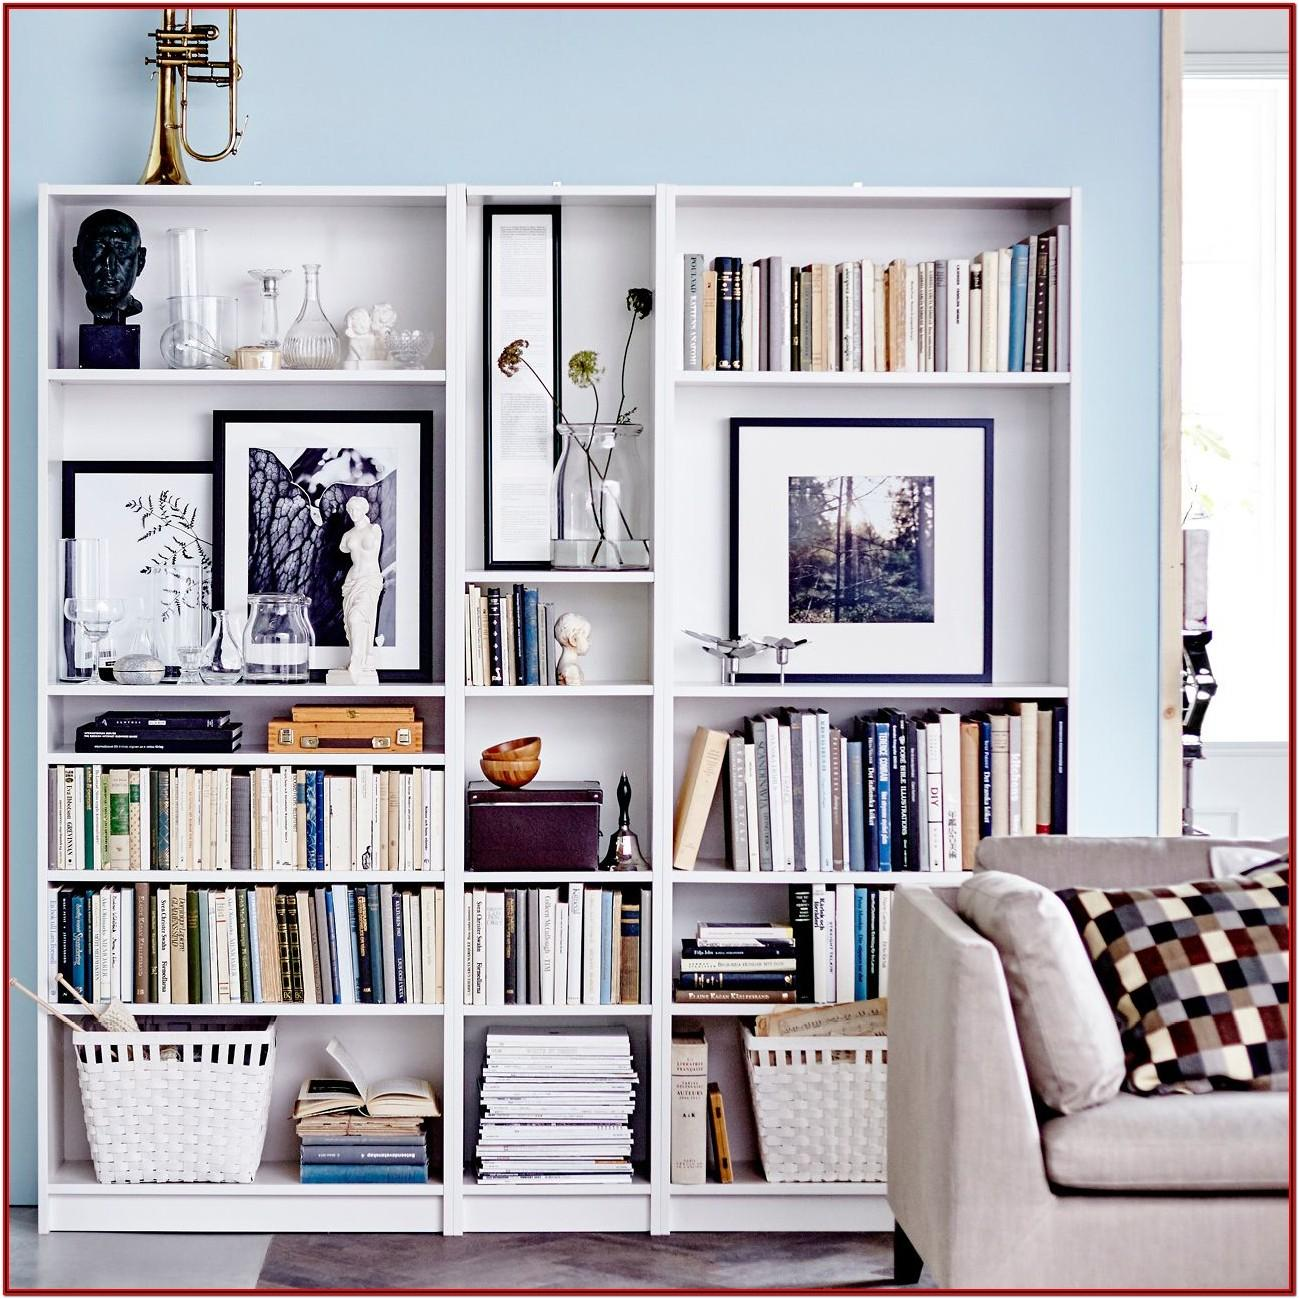 Ikea Living Room Lbrary Idea